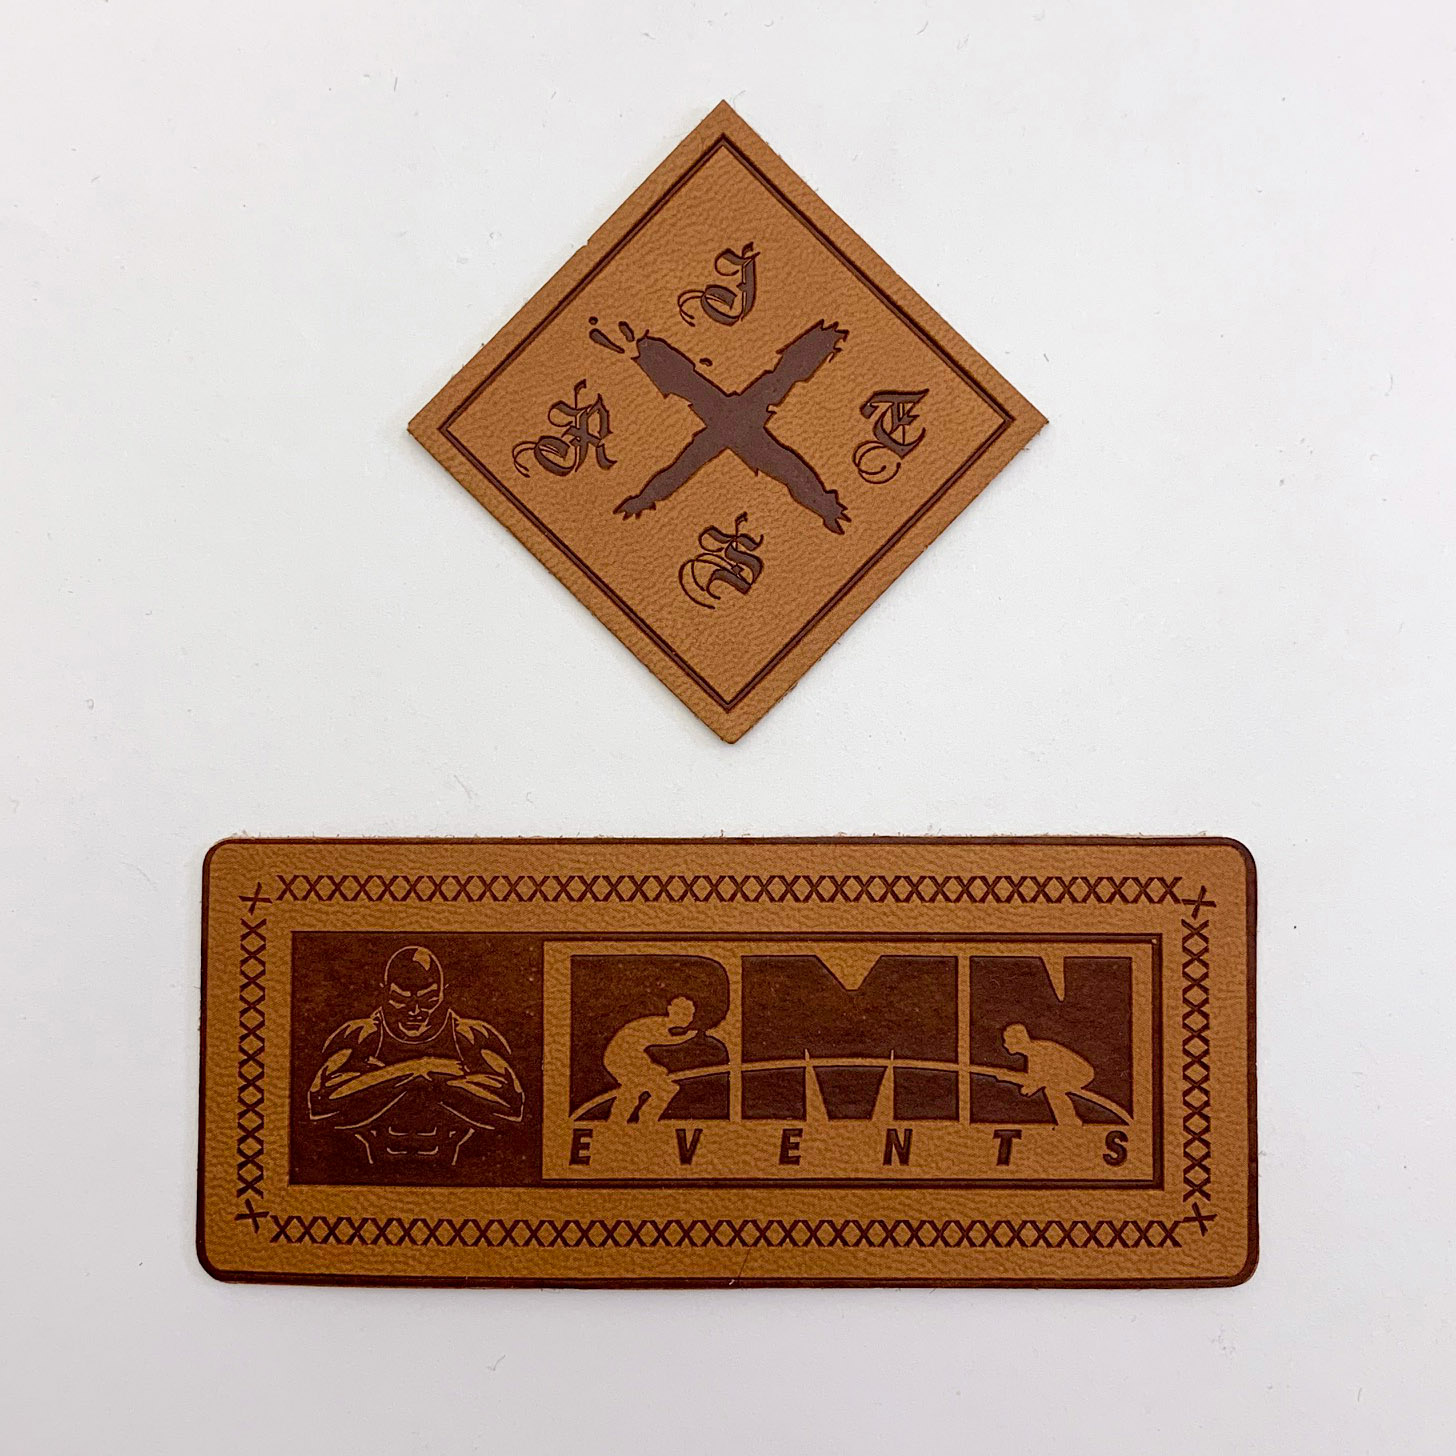 Leather Patches - Custom Patches - Made To Your Design